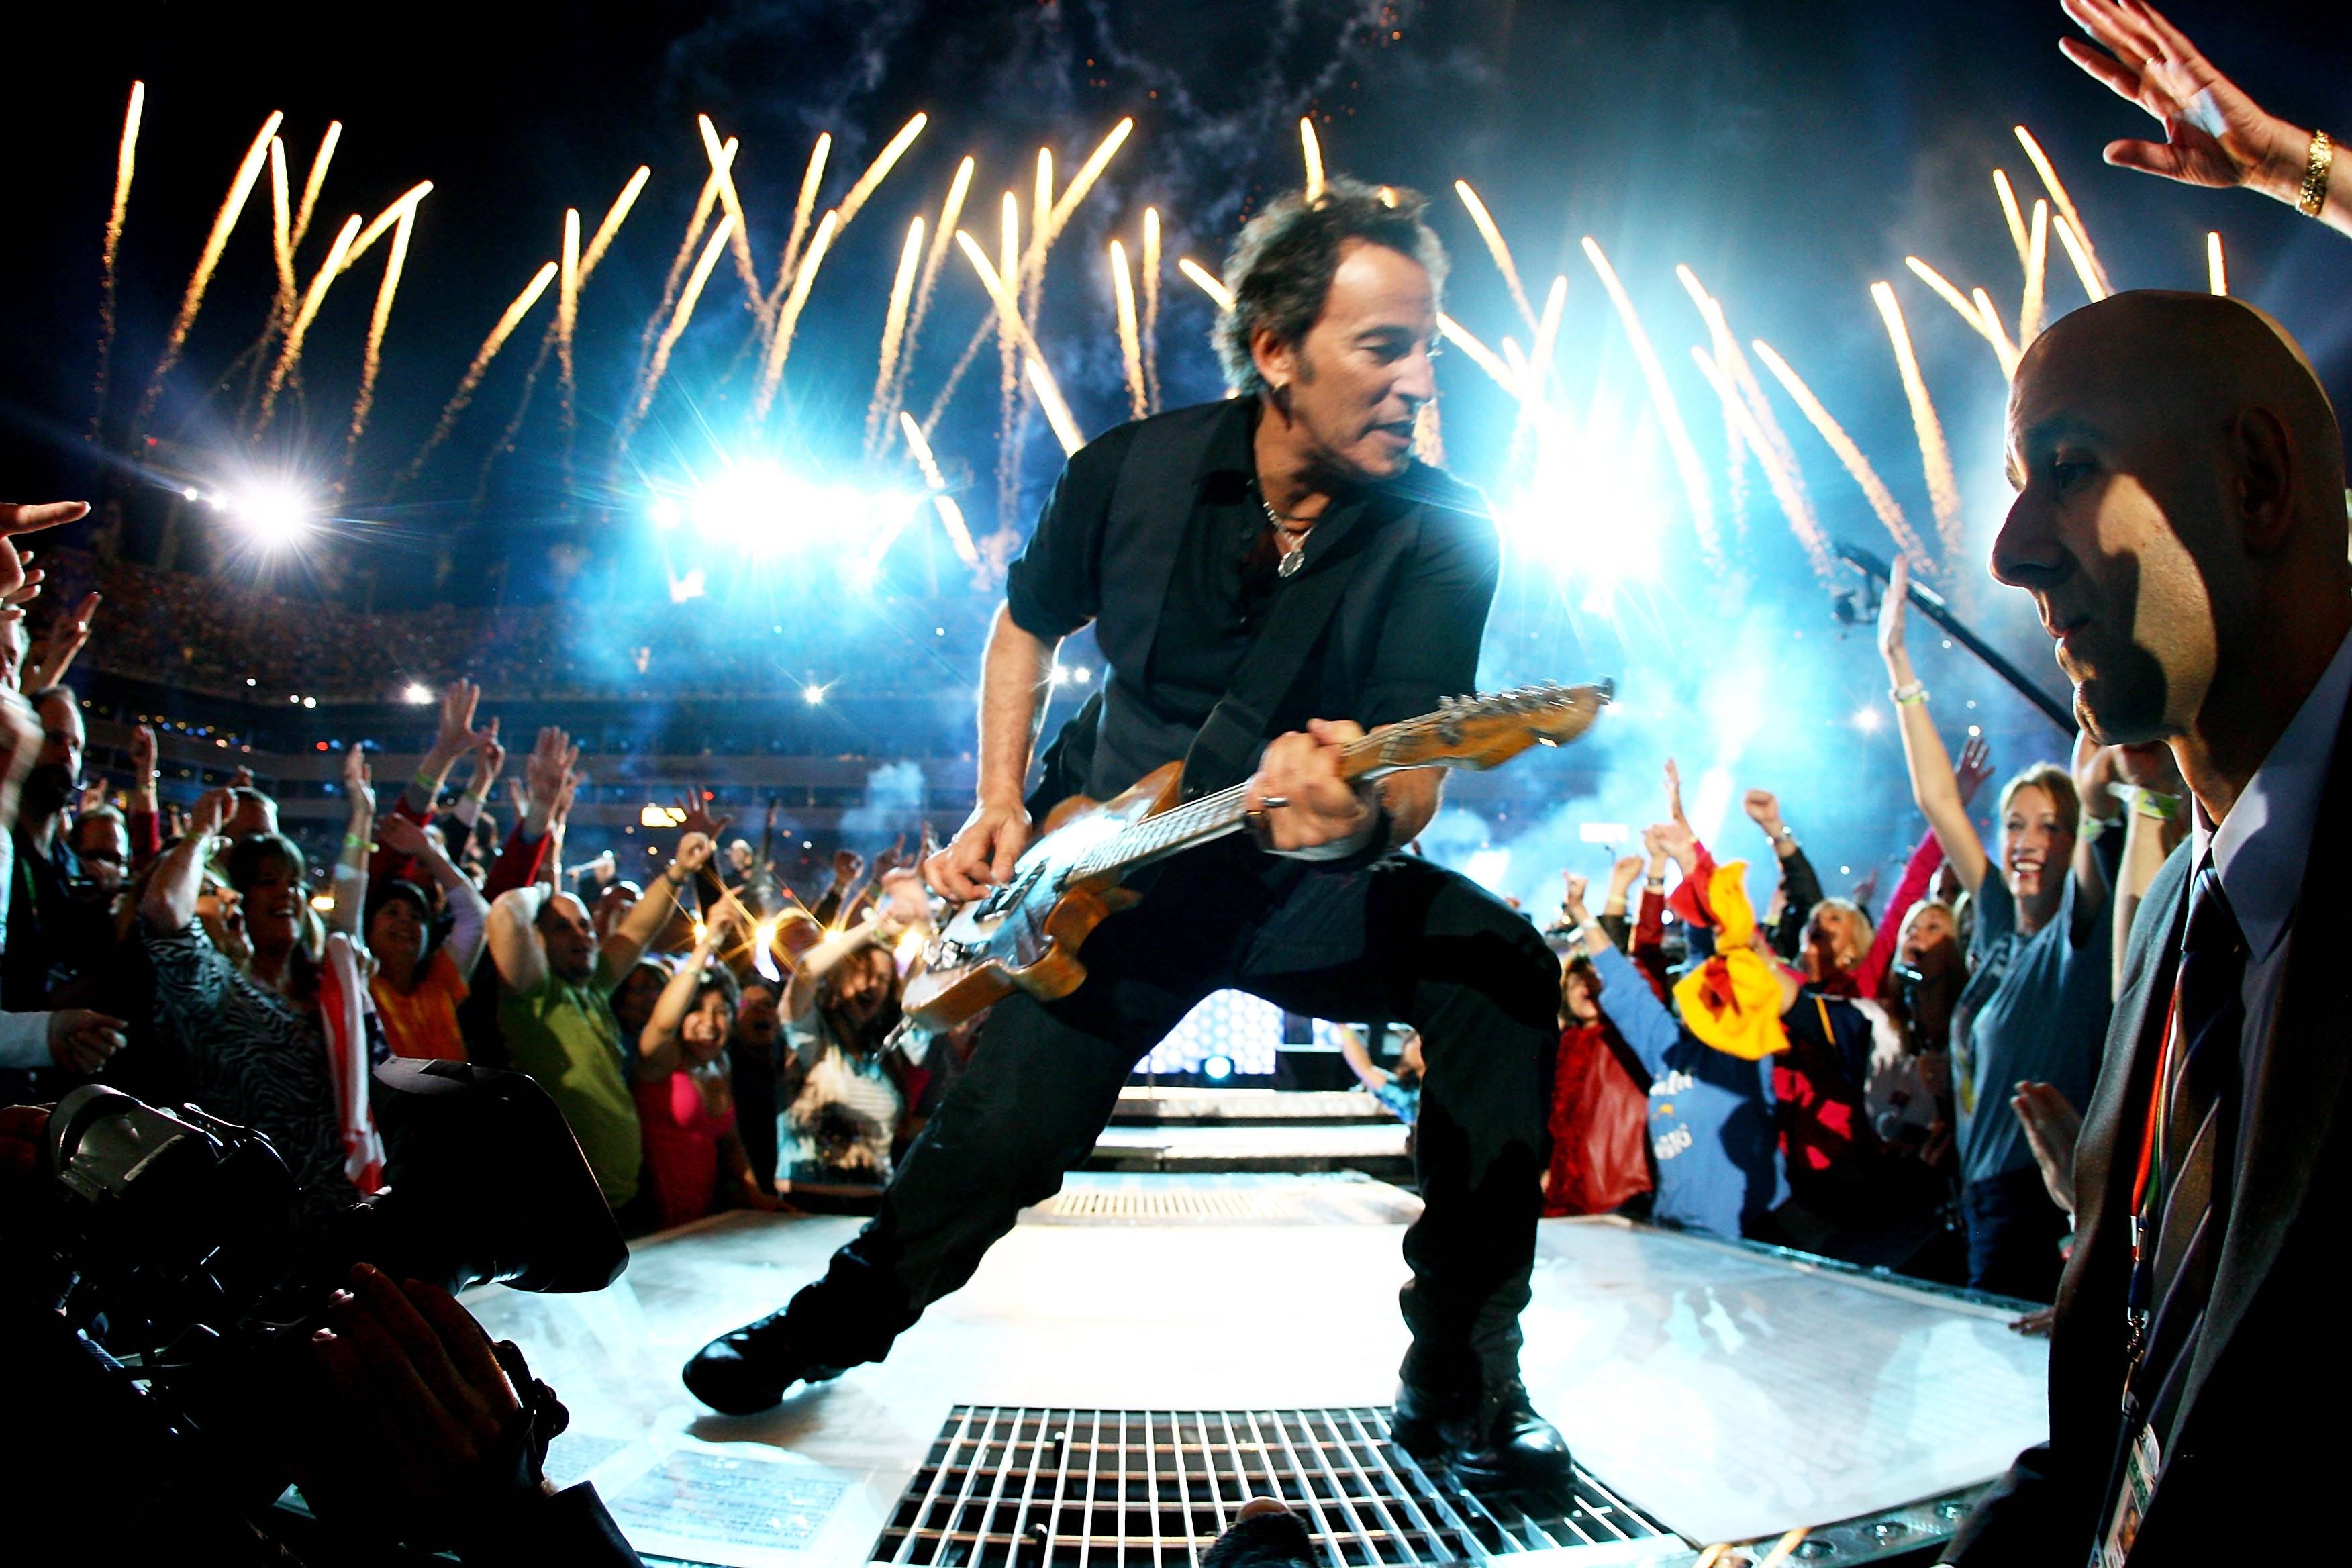 Leon Belasco Wallpapers Bruce Springsteen HD Wallpapers for desktop download